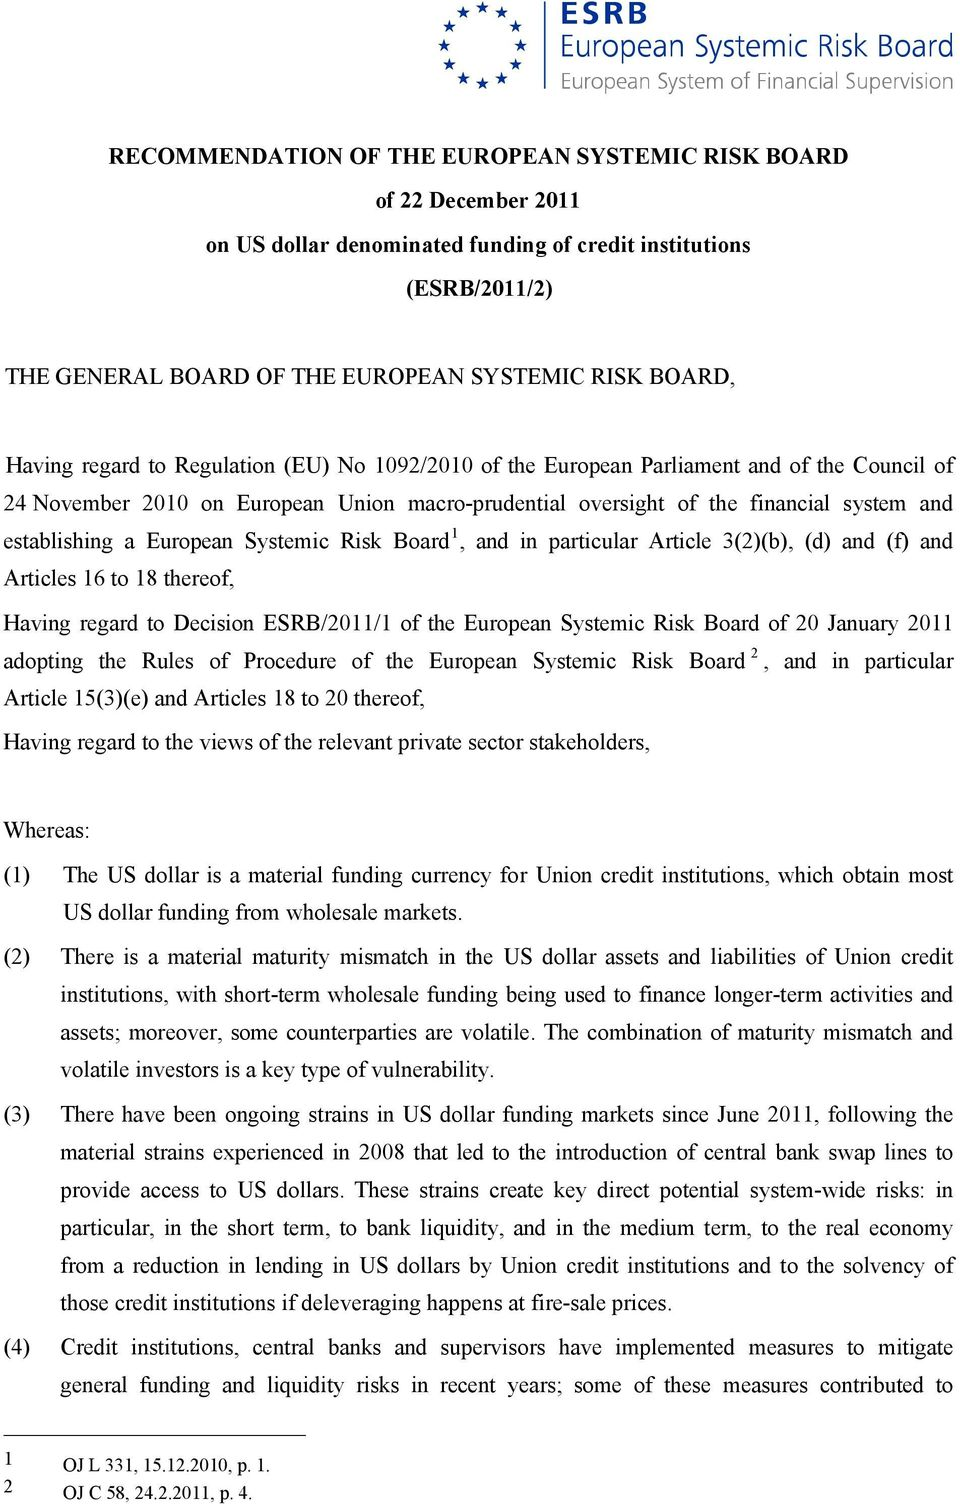 European Systemic Risk Board 1, and in particular Article 3(2), (d) and (f) and Articles 16 to 18 thereof, Having regard to Decision ESRB/2011/1 of the European Systemic Risk Board of 20 January 2011